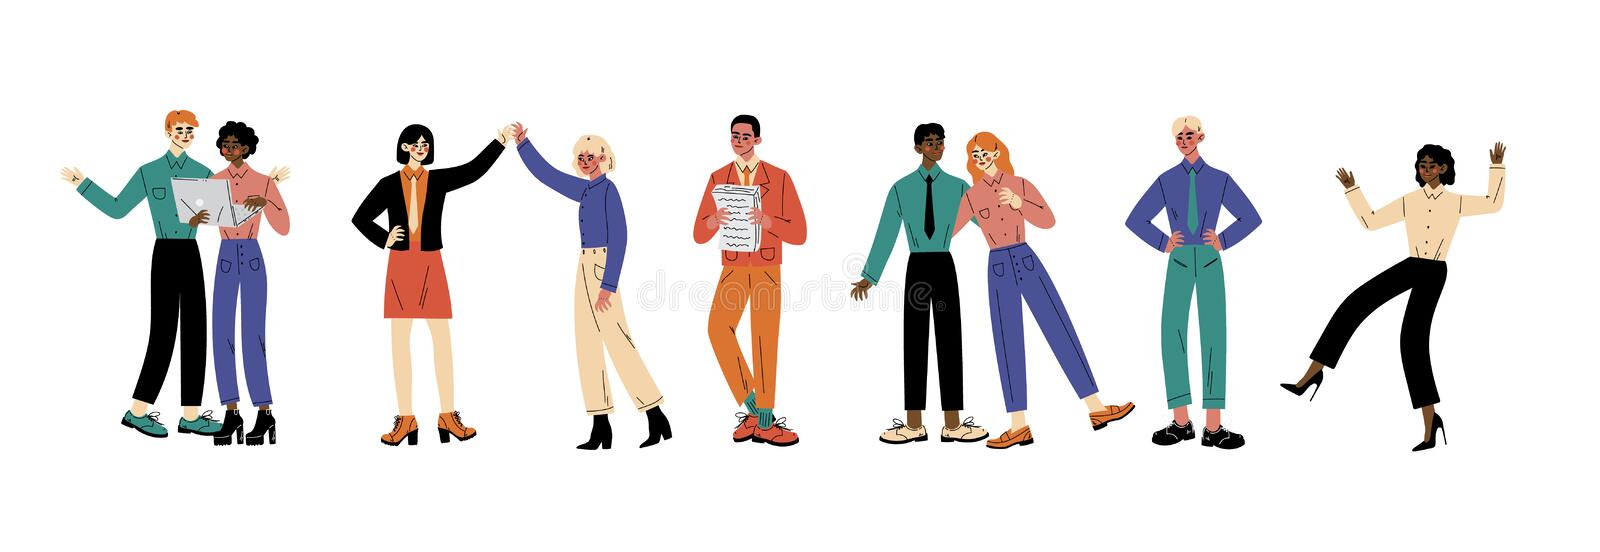 Characters in different situations cartoon vector illustration royalty free illustration